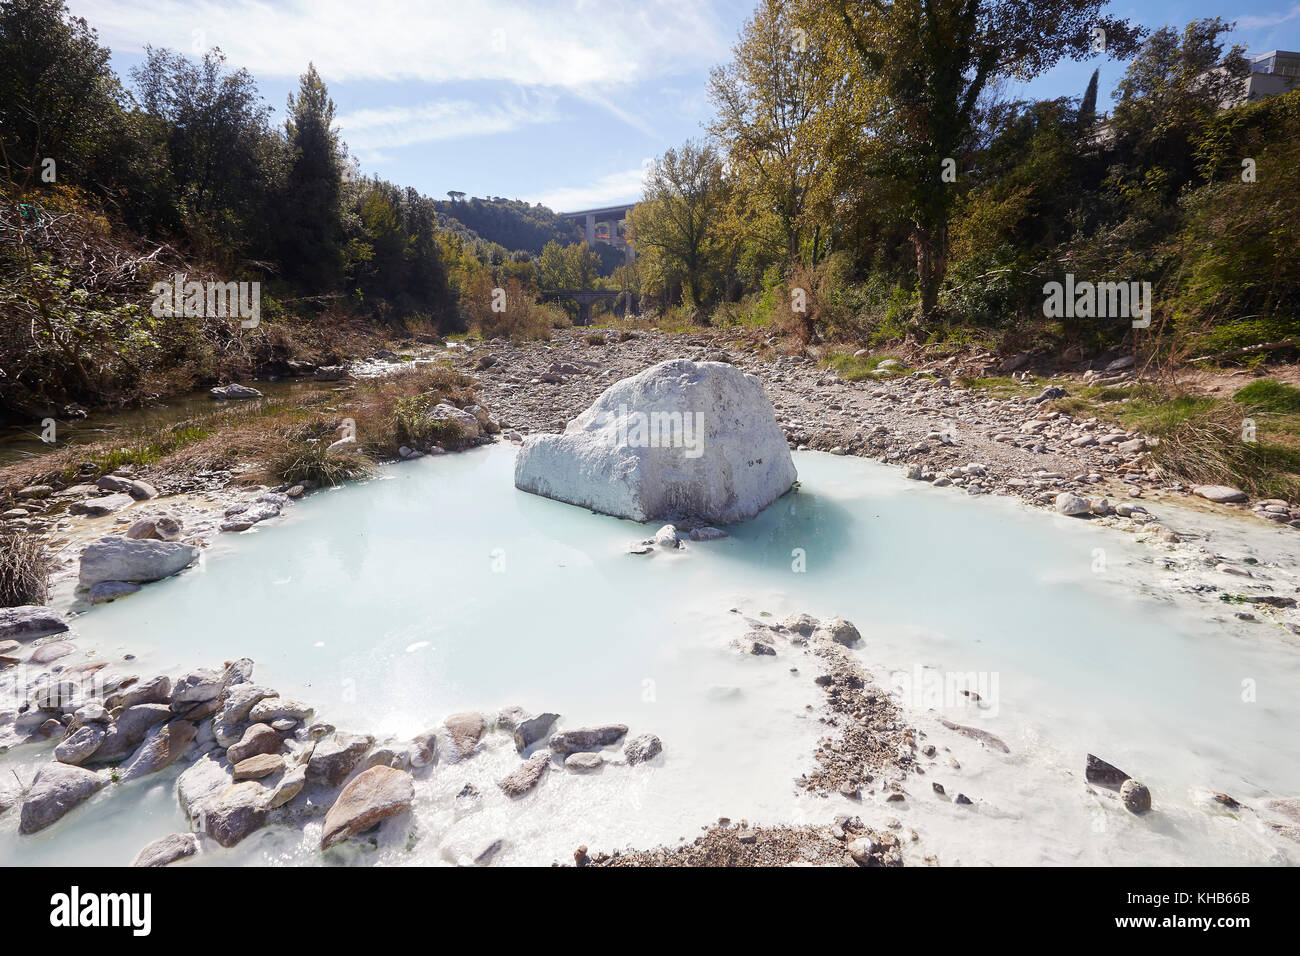 https://c8.alamy.com/comp/KHB66B/bagni-di-petriolo-geo-thermal-hot-springs-on-the-river-farma-district-KHB66B.jpg